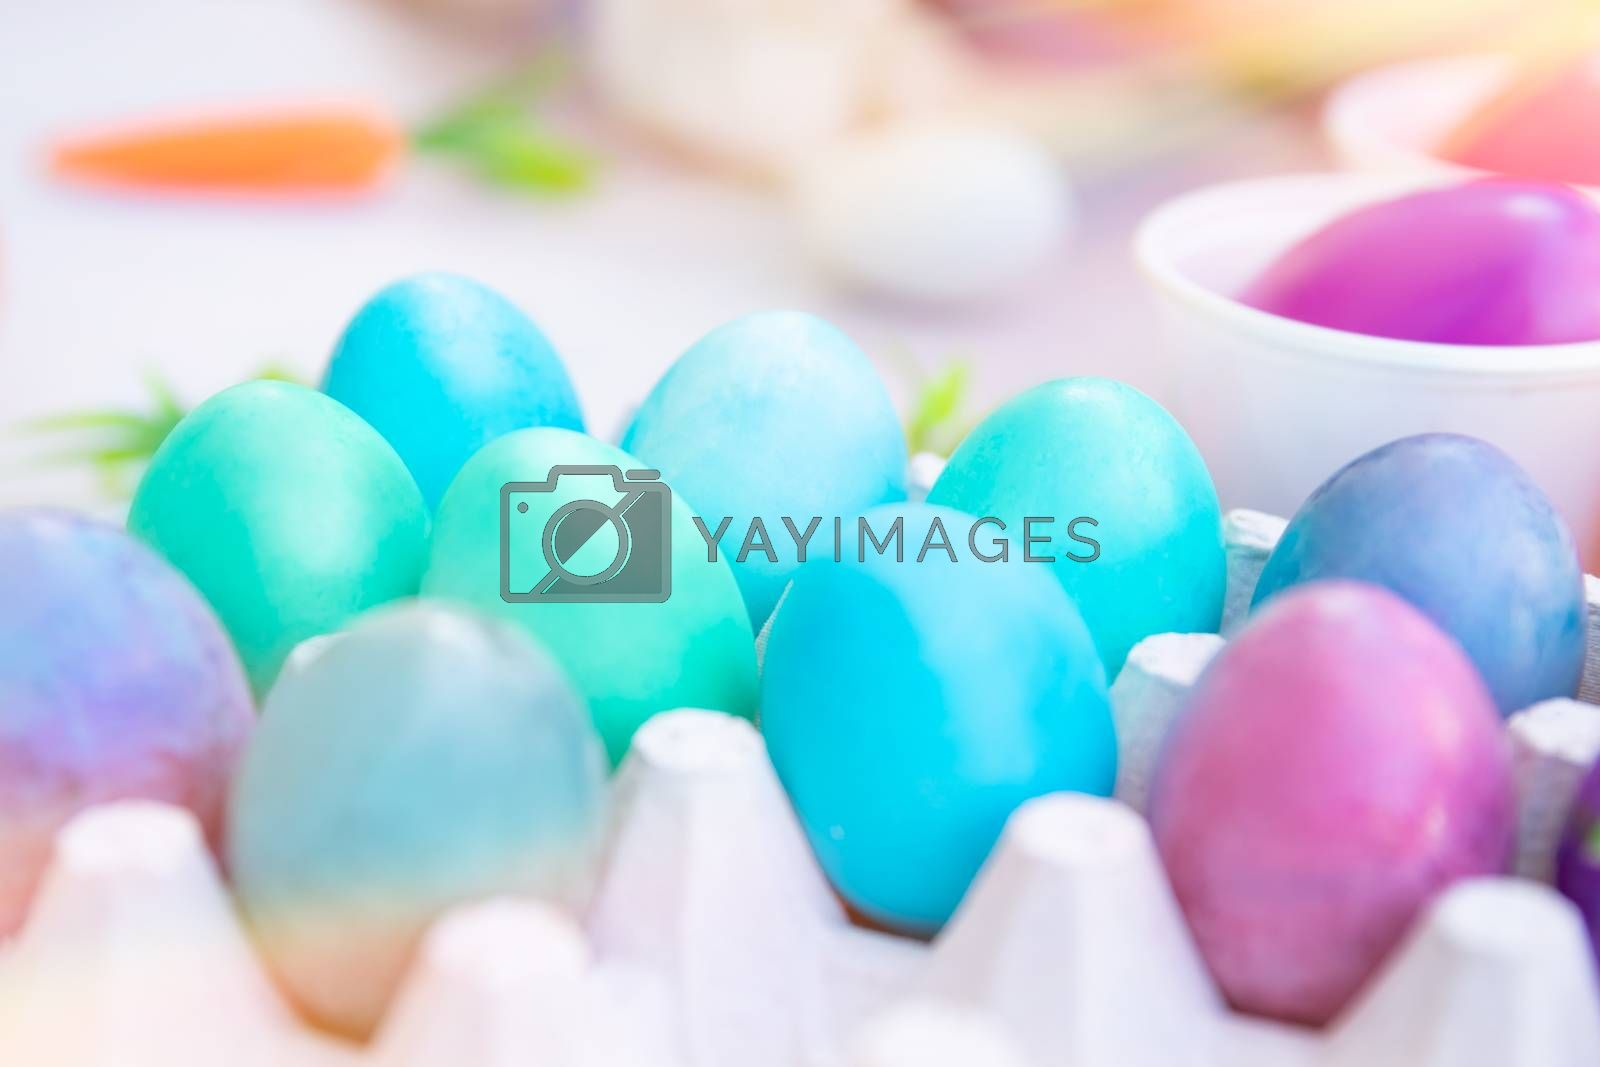 Closeup photo of a many different colorful Easter eggs, traditional painted Easter food, child's handmade art, happy religious holiday